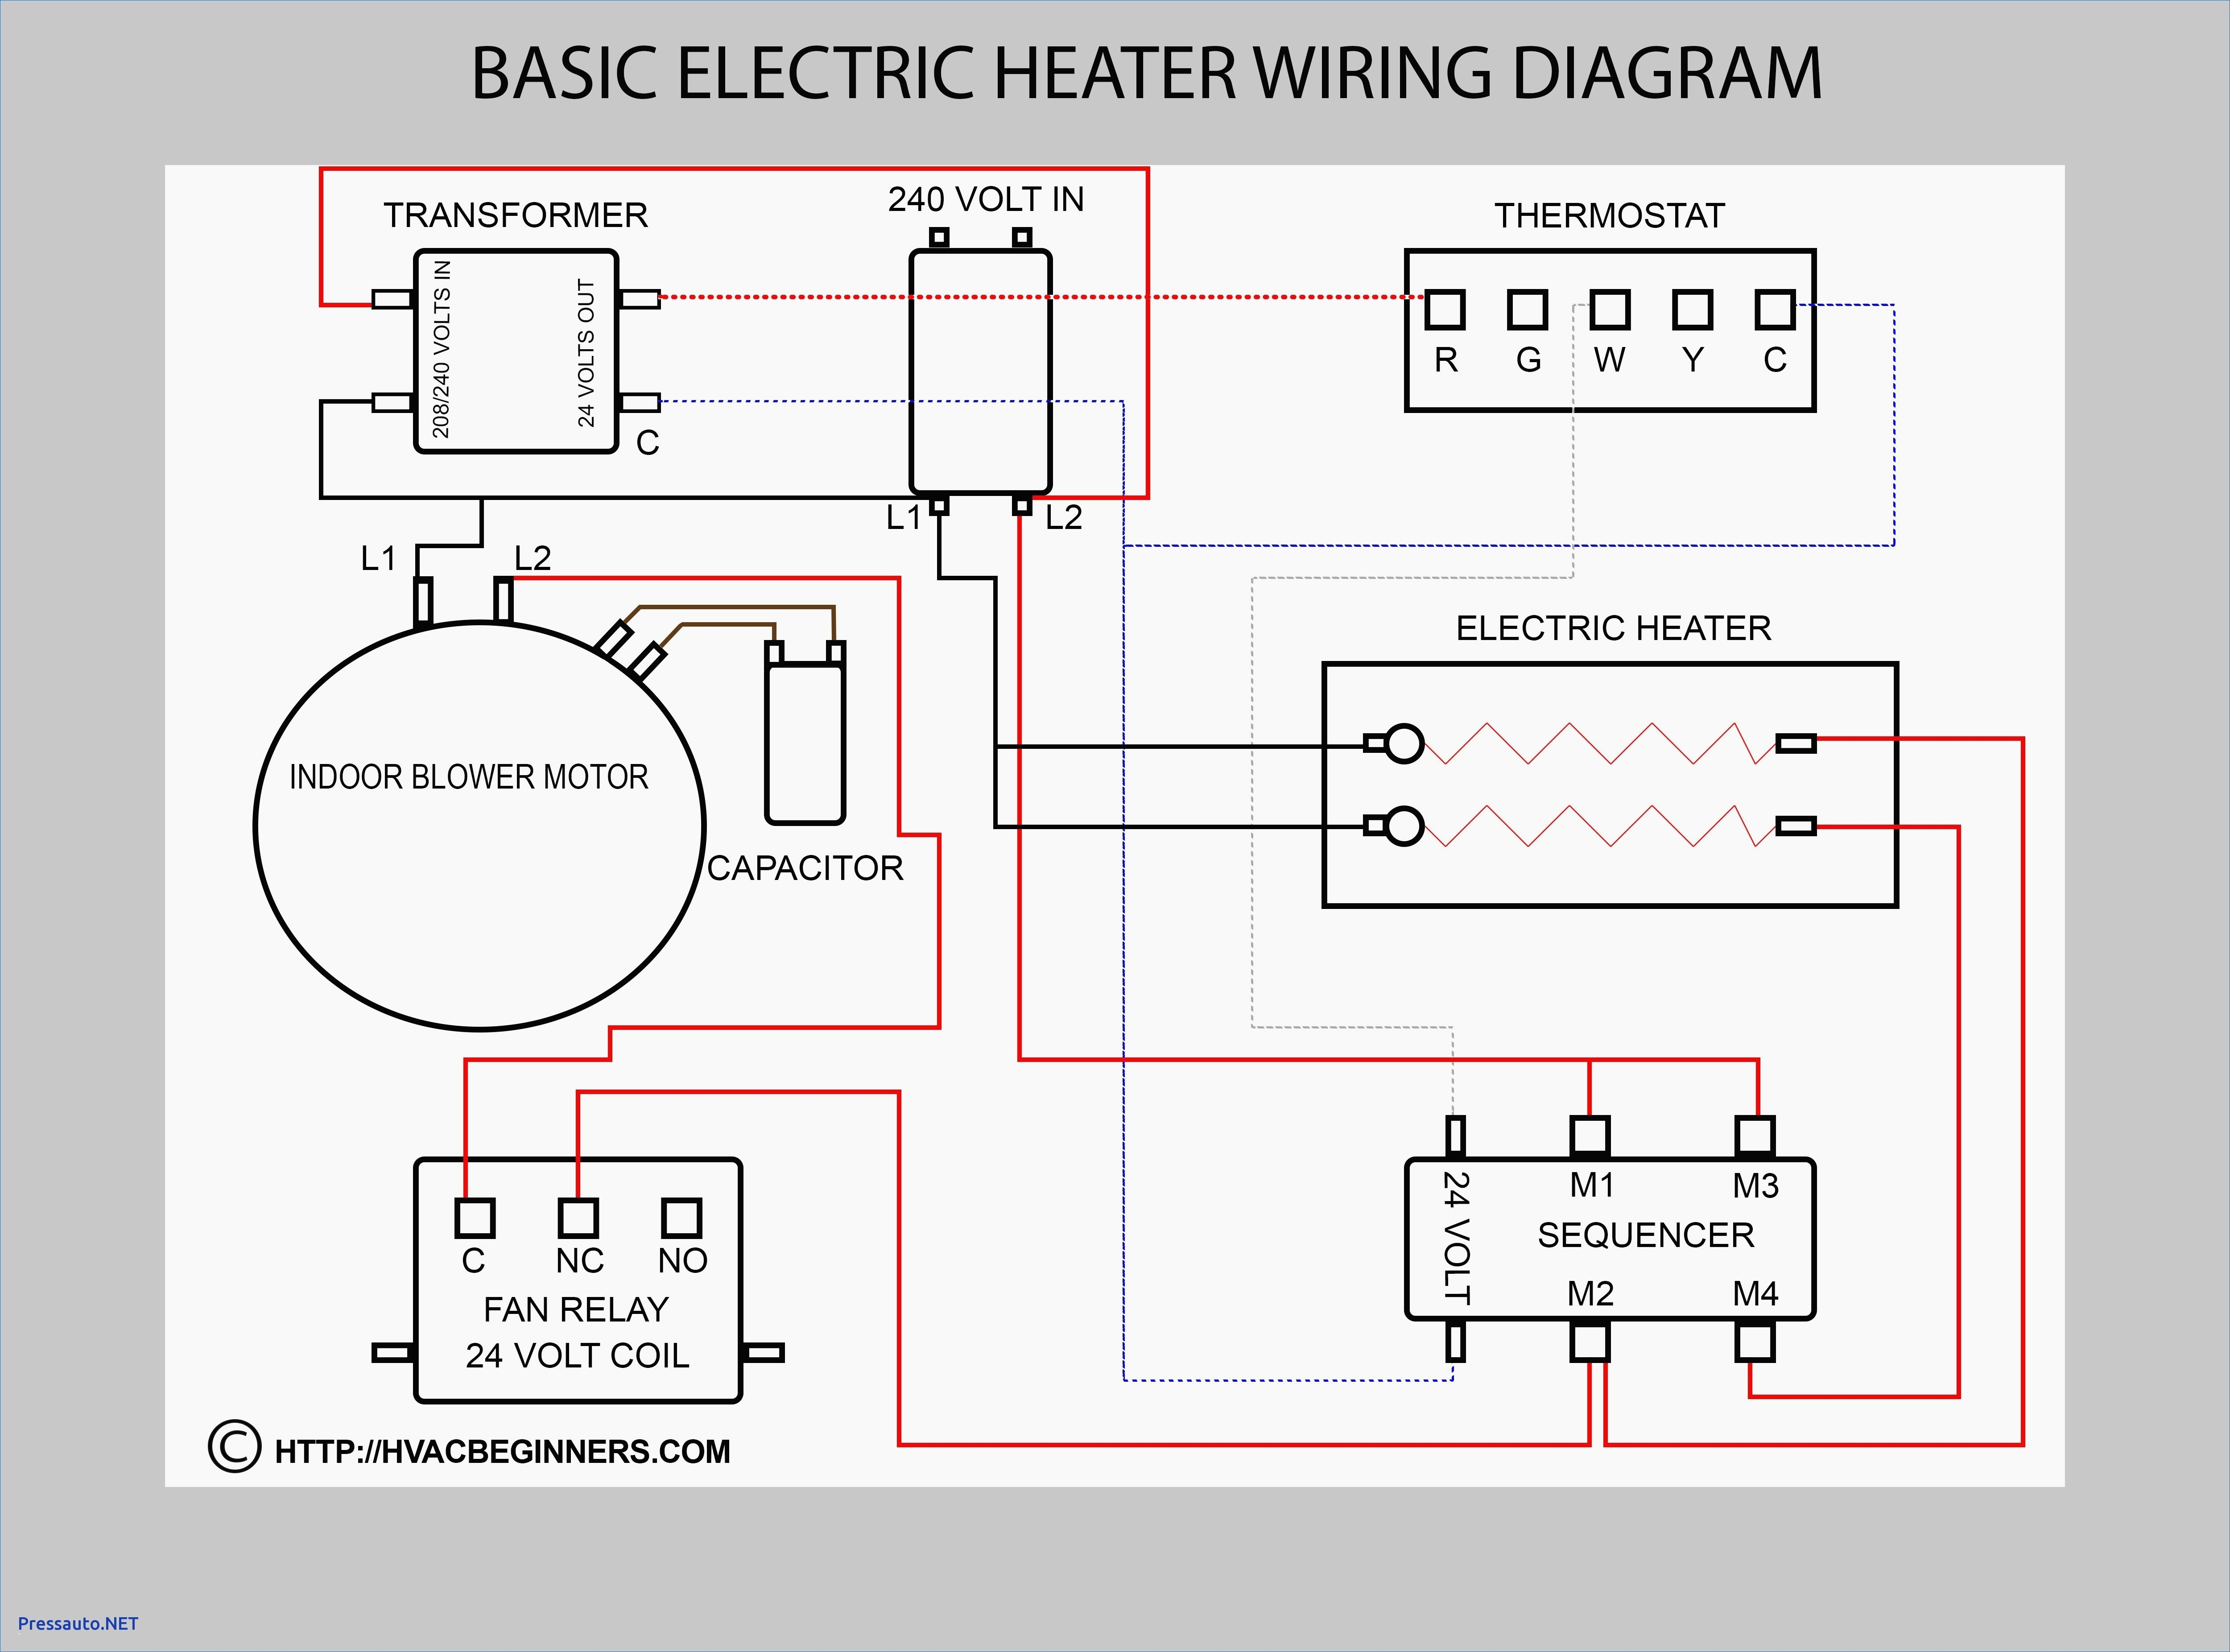 goodman heat pump thermostat wiring diagram Collection-Goodman Heat Pump Wiring Diagram Inspirational Elegant Heat Pump thermostat Wiring Diagram Diagram 4-a